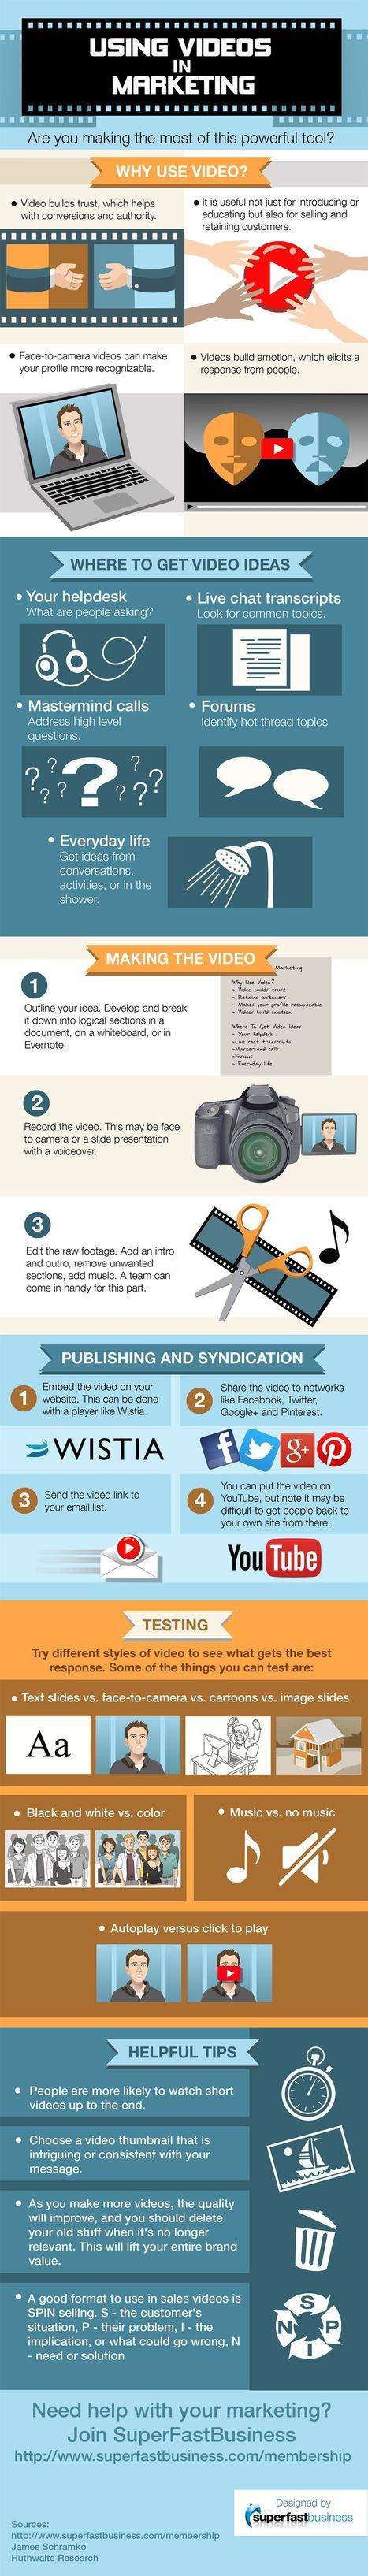 How to use videos in marketing #infographic | Social Media Marketing Checklist | Scoop.it